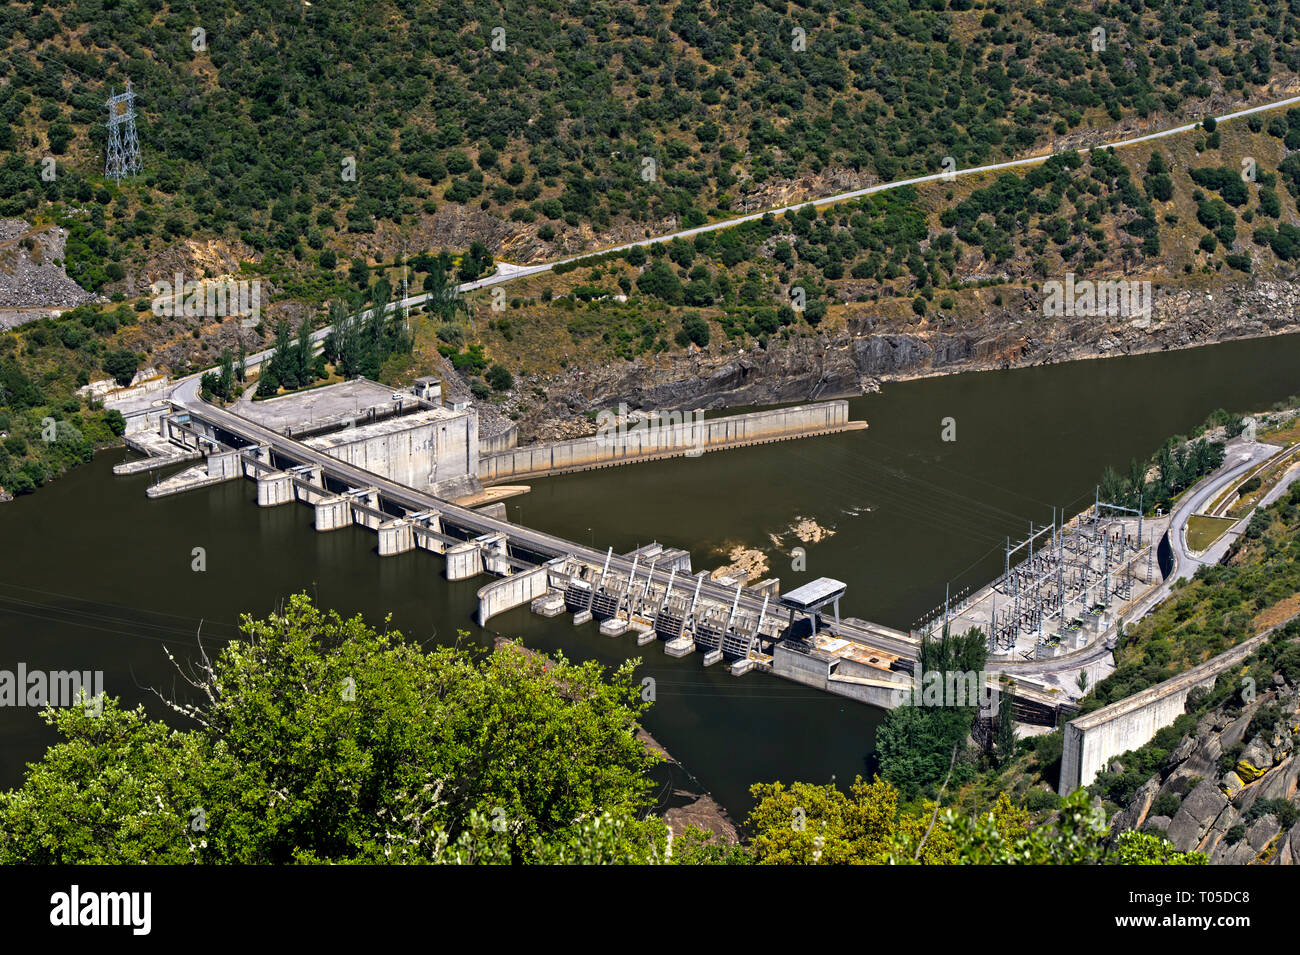 Run-of-the-river hydroelectric power plant Valeira Dam with lock at the Douro river,  Sao Joao da Pesqueira, Douro Valley, Region, Portugal - Stock Image